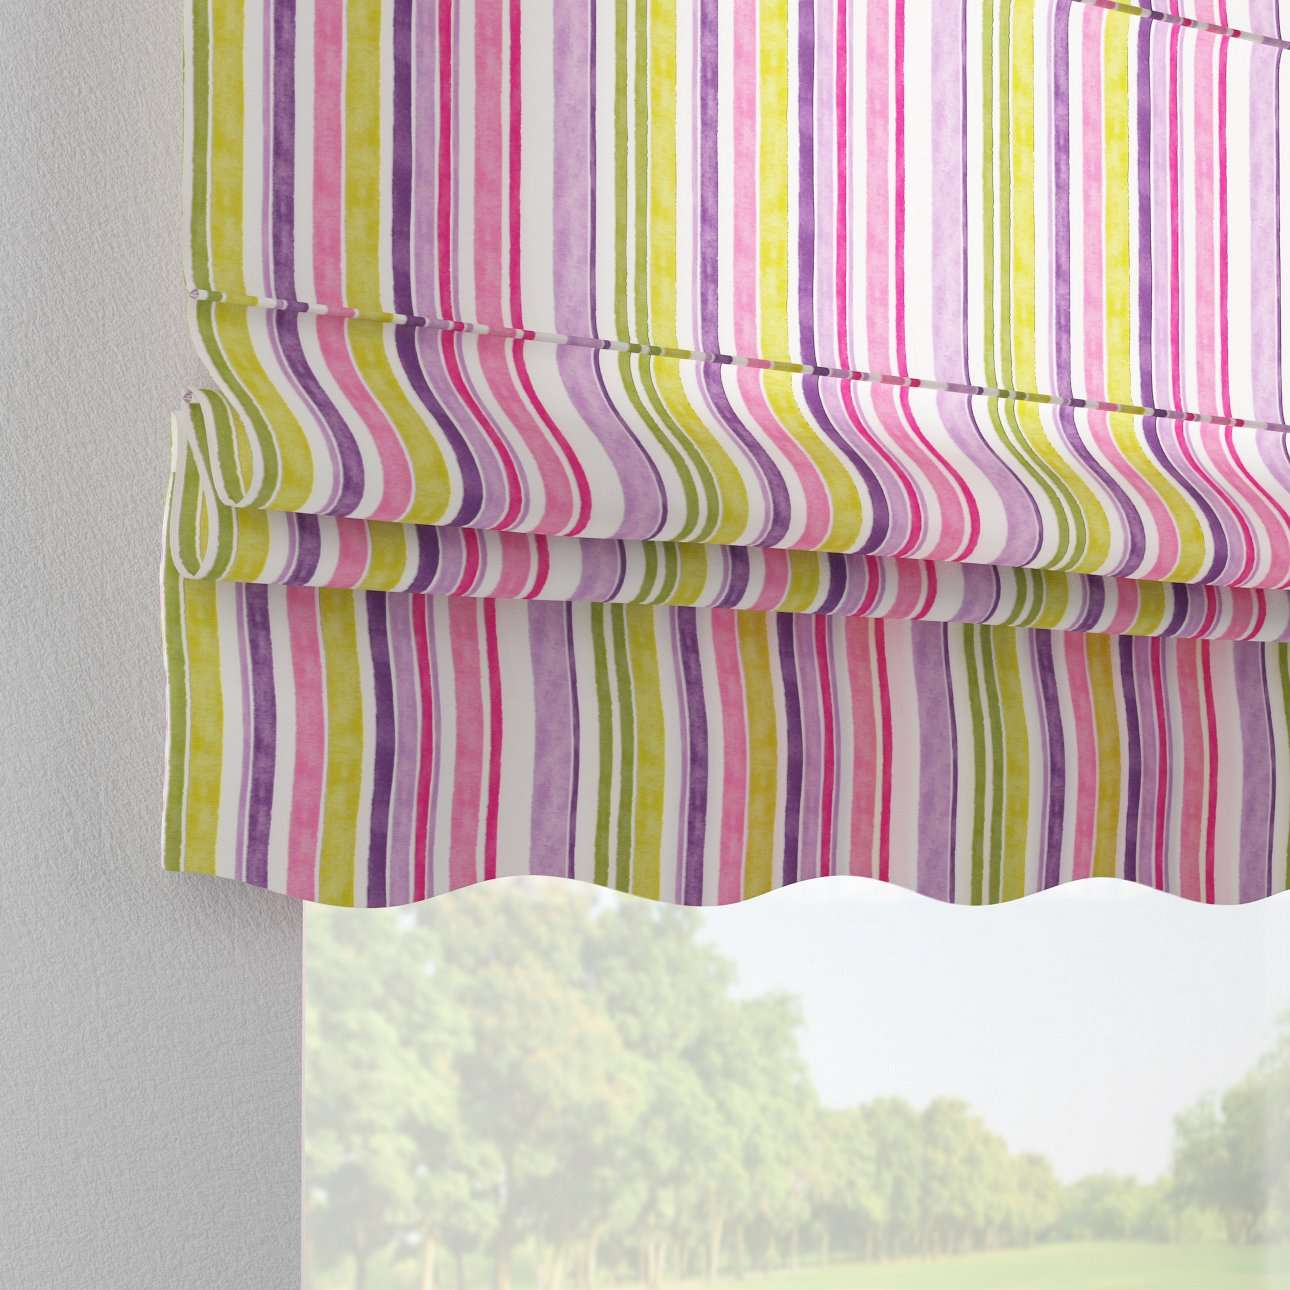 Florence roman blind  80 x 170 cm (31.5 x 67 inch) in collection Monet, fabric: 140-01